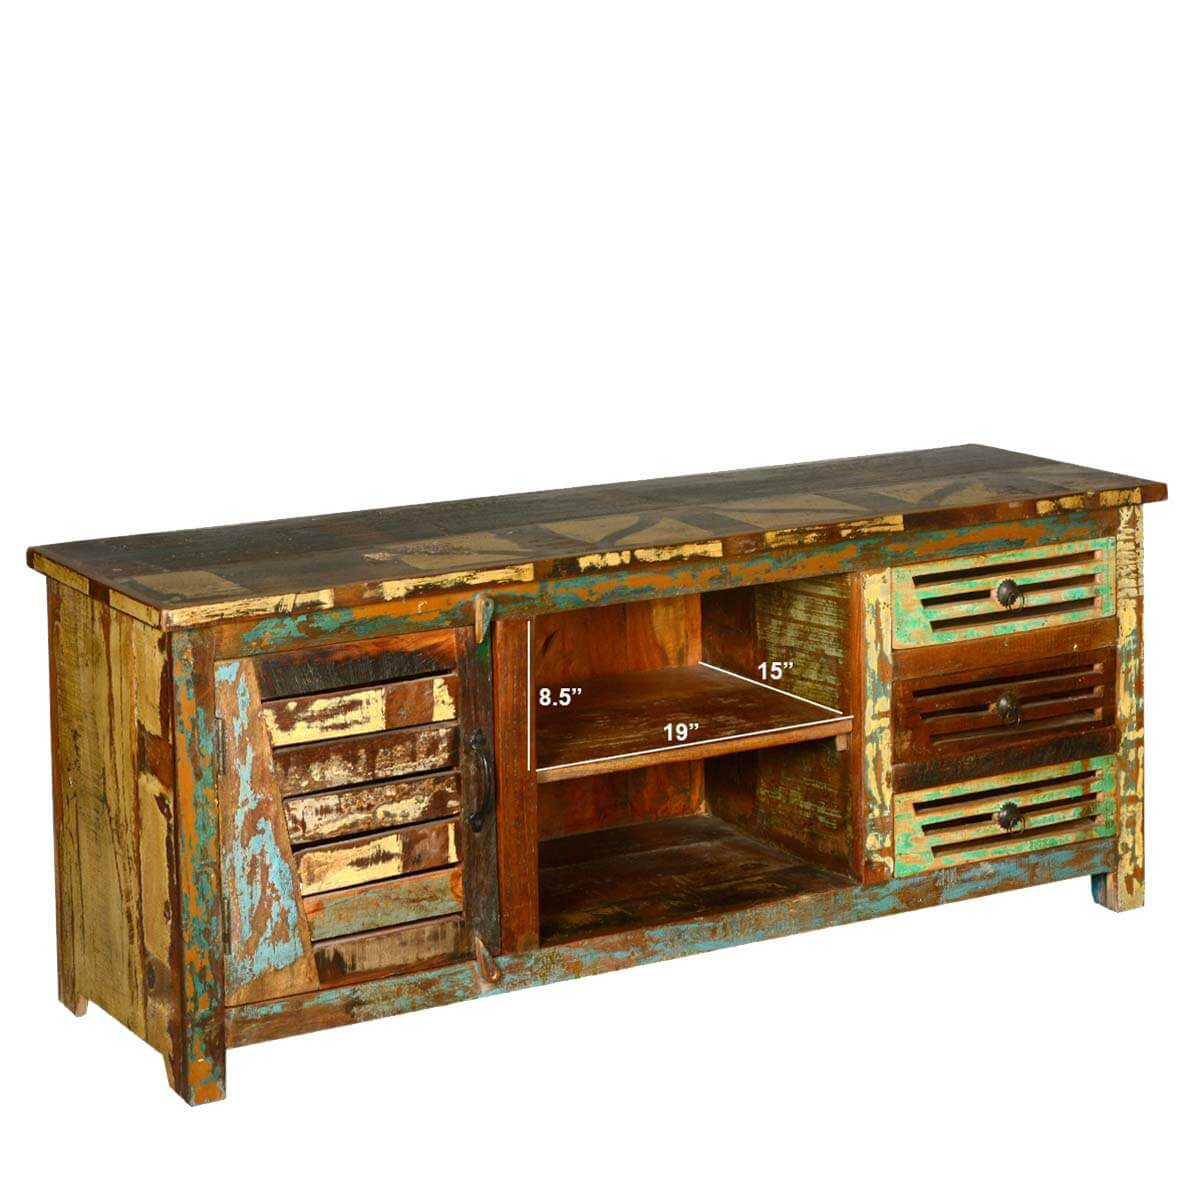 Reclaimed Wood 3 Drawers Tv Stand Media Console. Open Cabinets. Girl Nursery Themes. Quartz Vs Granite Countertop. Island Lighting. Unique Wallpaper. Wickmans Furniture. Sherwin Williams Vs Behr. Gold Dining Table